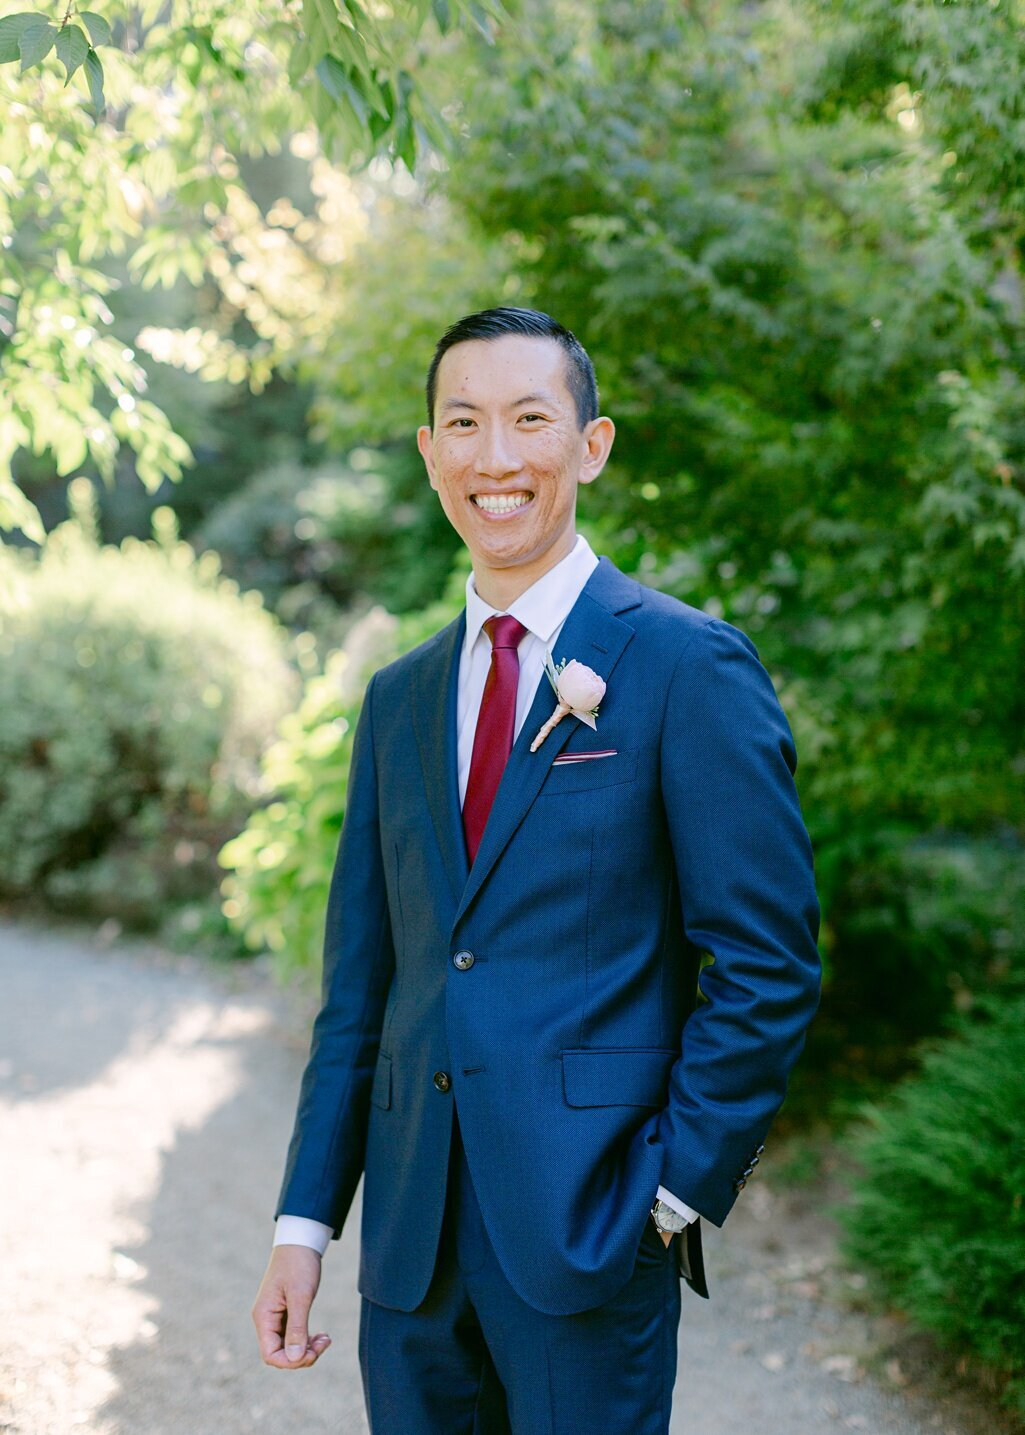 Jessie-Barksdale-Photography_Hakone-Gardens-Saratoga_San-Francisco-Bay-Area-Wedding-Photographer_0060